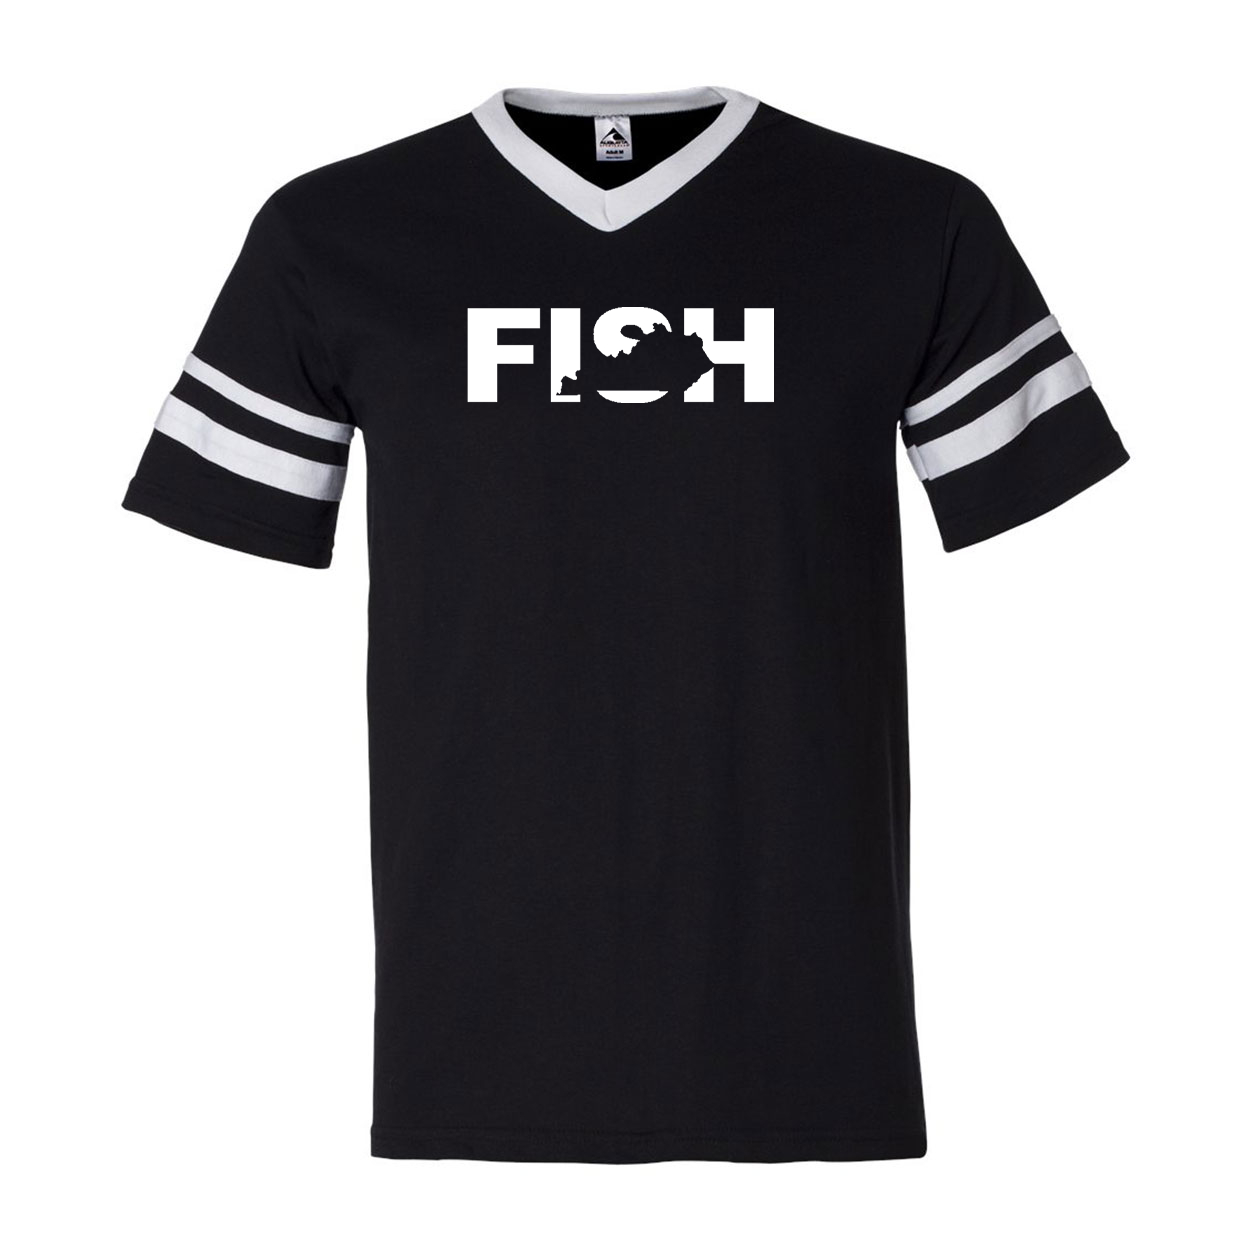 Fish Kentucky Classic Premium Striped Jersey T-Shirt Black/White (White Logo)